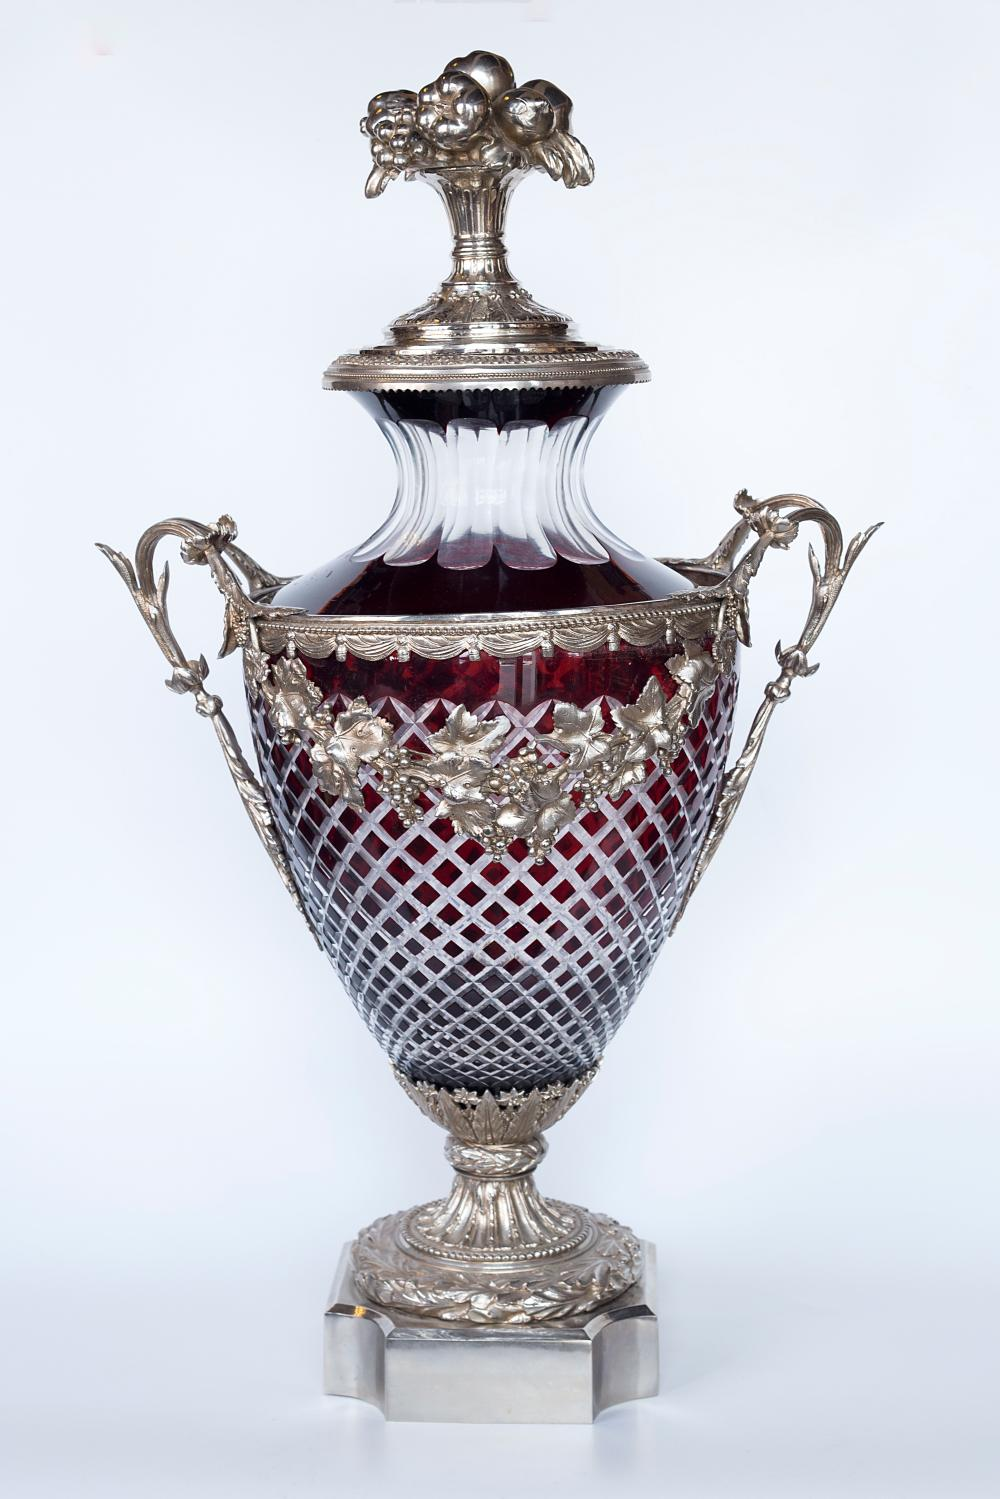 Pair of massive Baccarat cut crystal and silver-plated bronze decorative vases